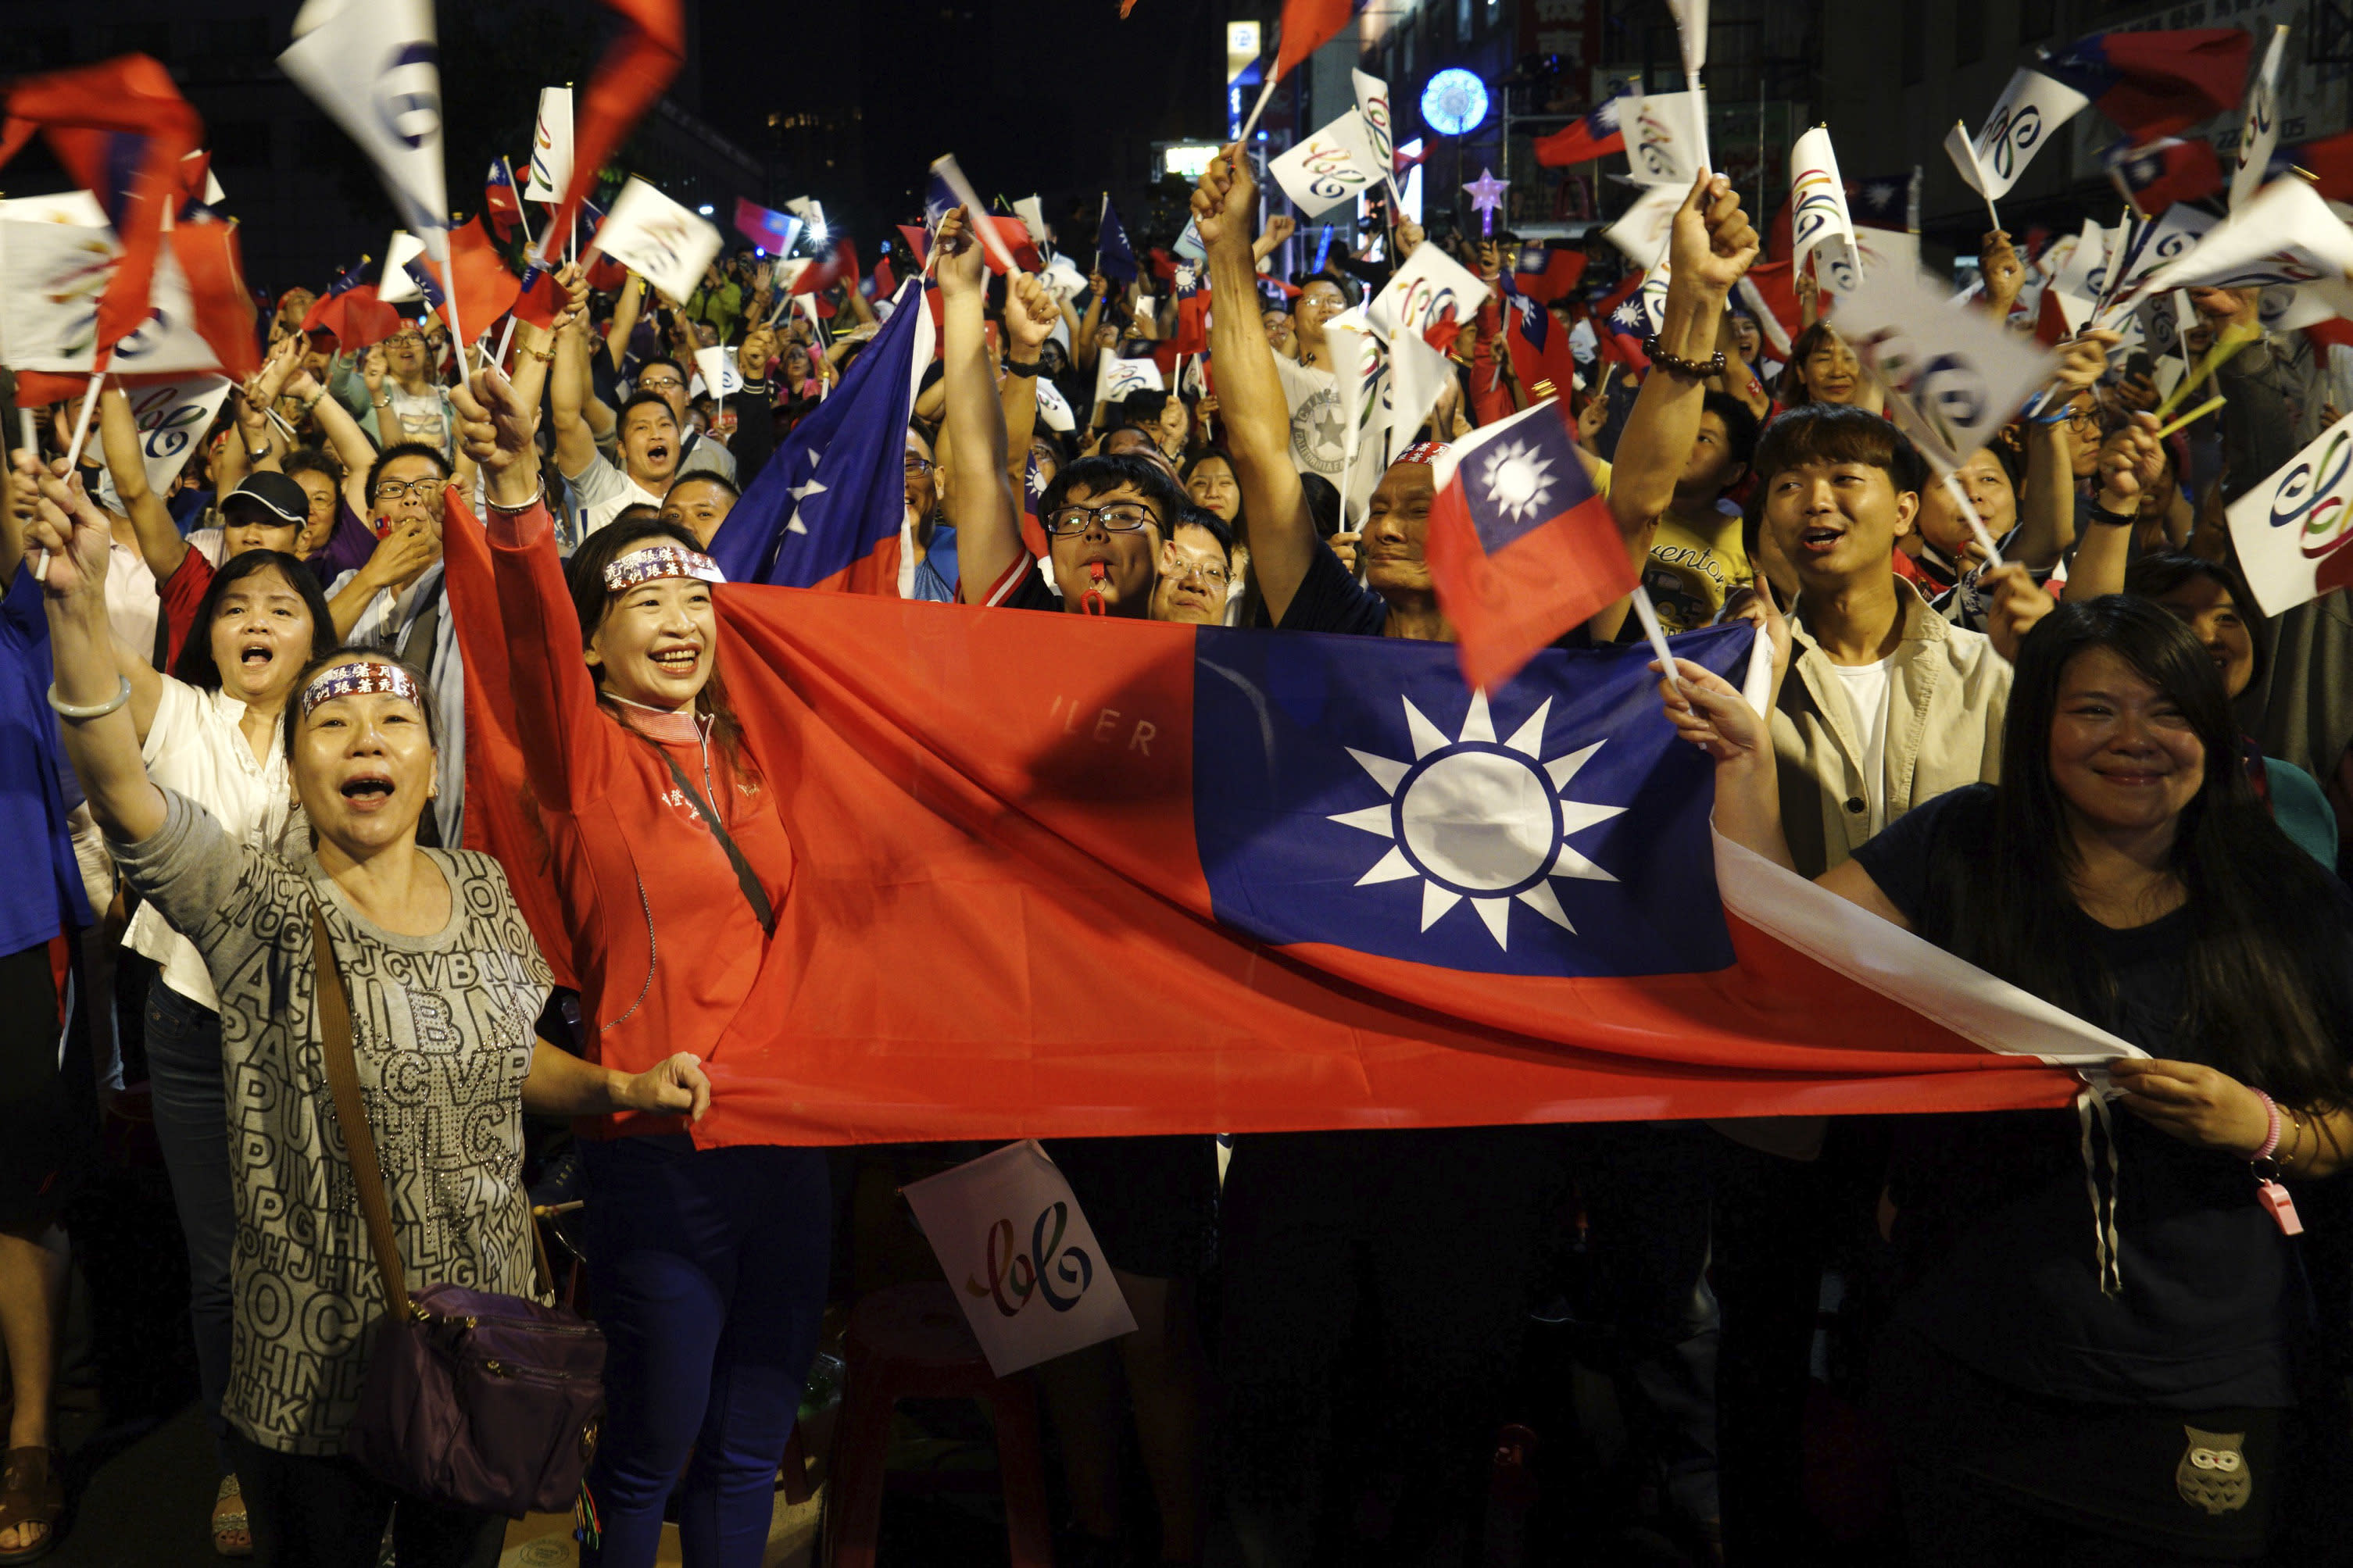 Supporters of the opposition Nationalist Party cheer in Kaohsiung, Taiwan, Saturday, Nov. 24, 2018. Taiwan's ruling party suffered a major defeat Saturday in local elections seen as a referendum on the administration of the island's independence-leaning president amid growing economic and political pressure from China. (AP Photo)